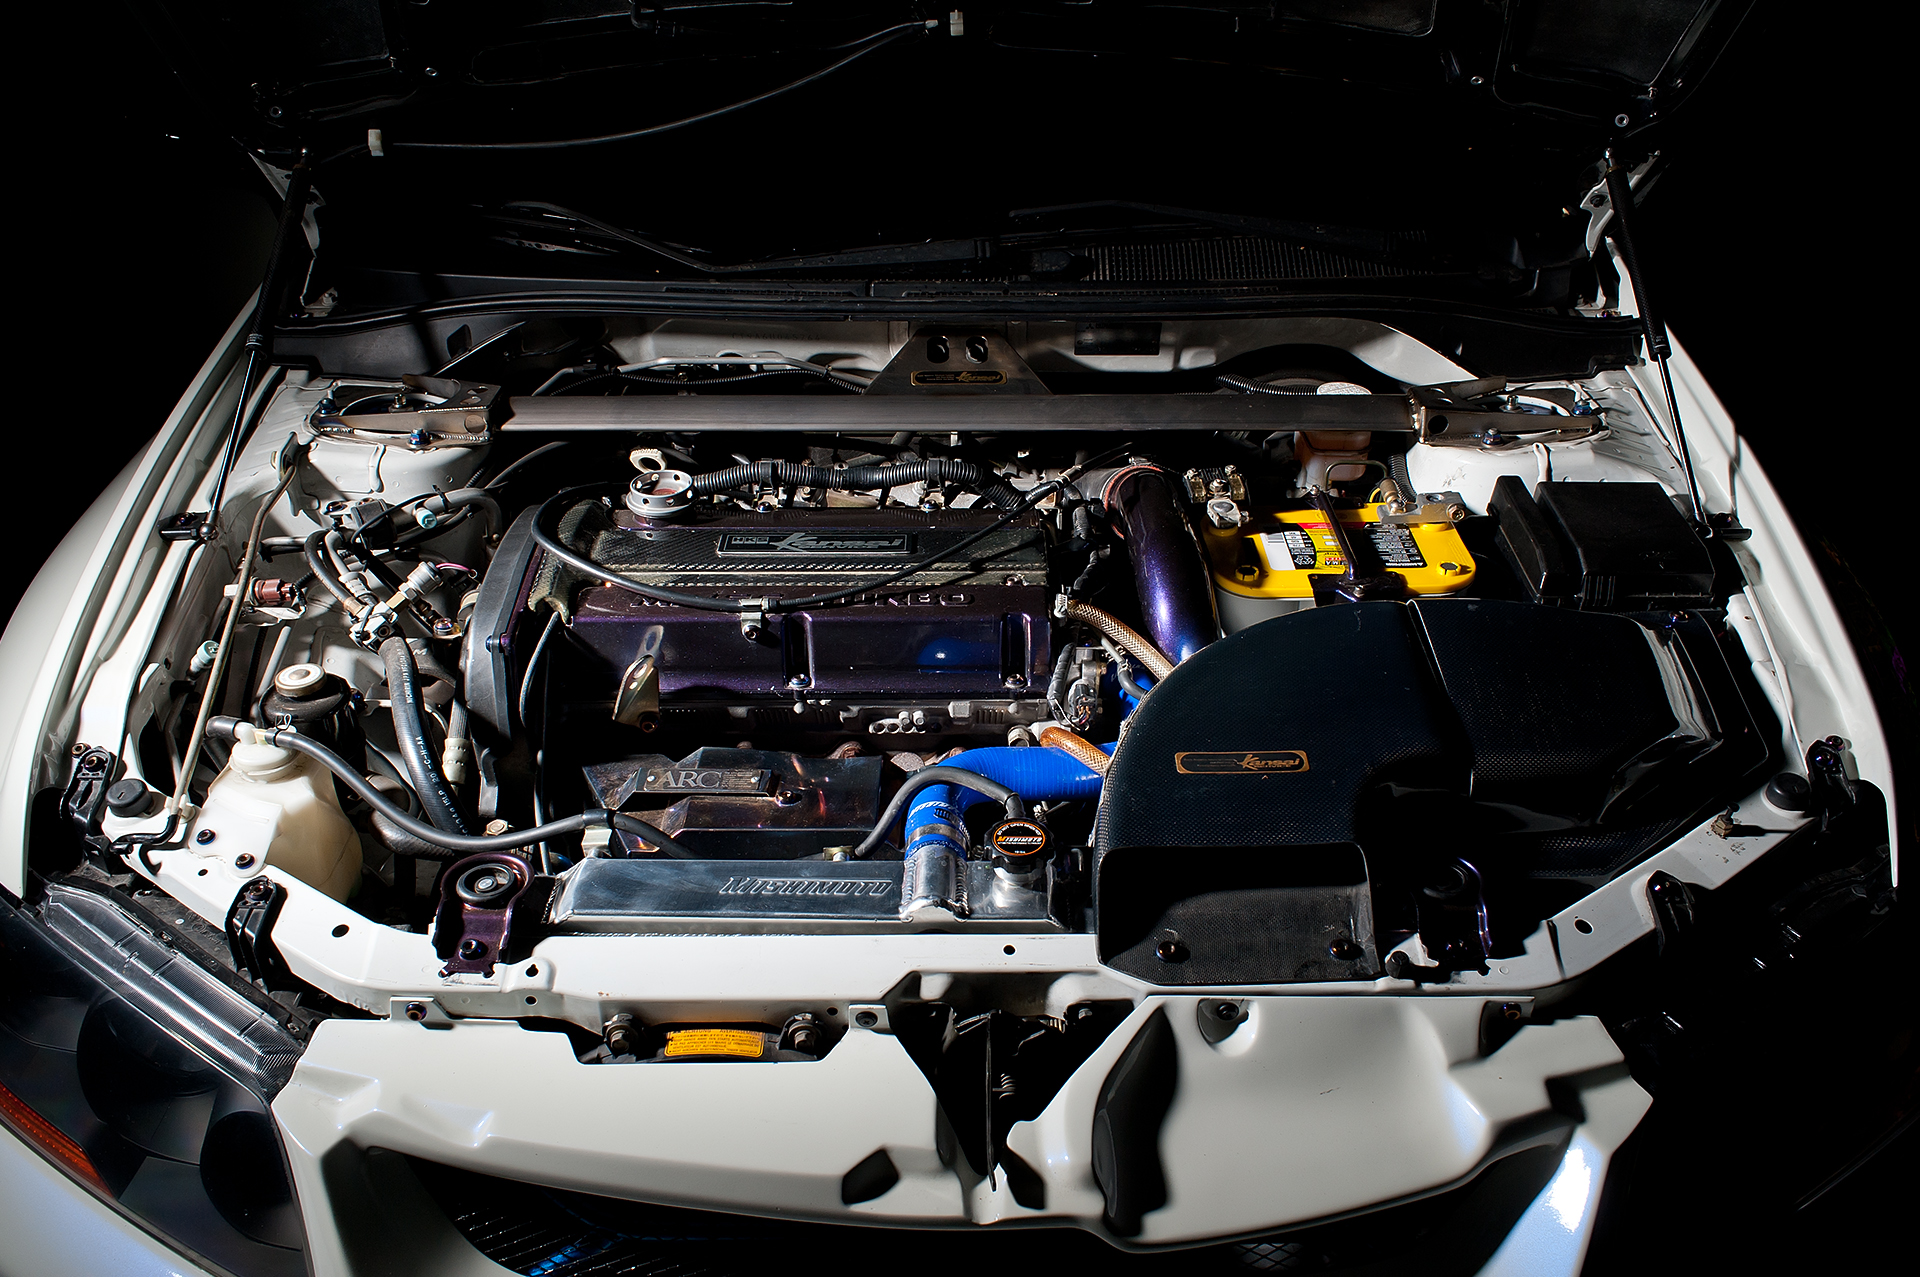 Engine bay shot of White Mitsubishi Evo IX with Varis body kit